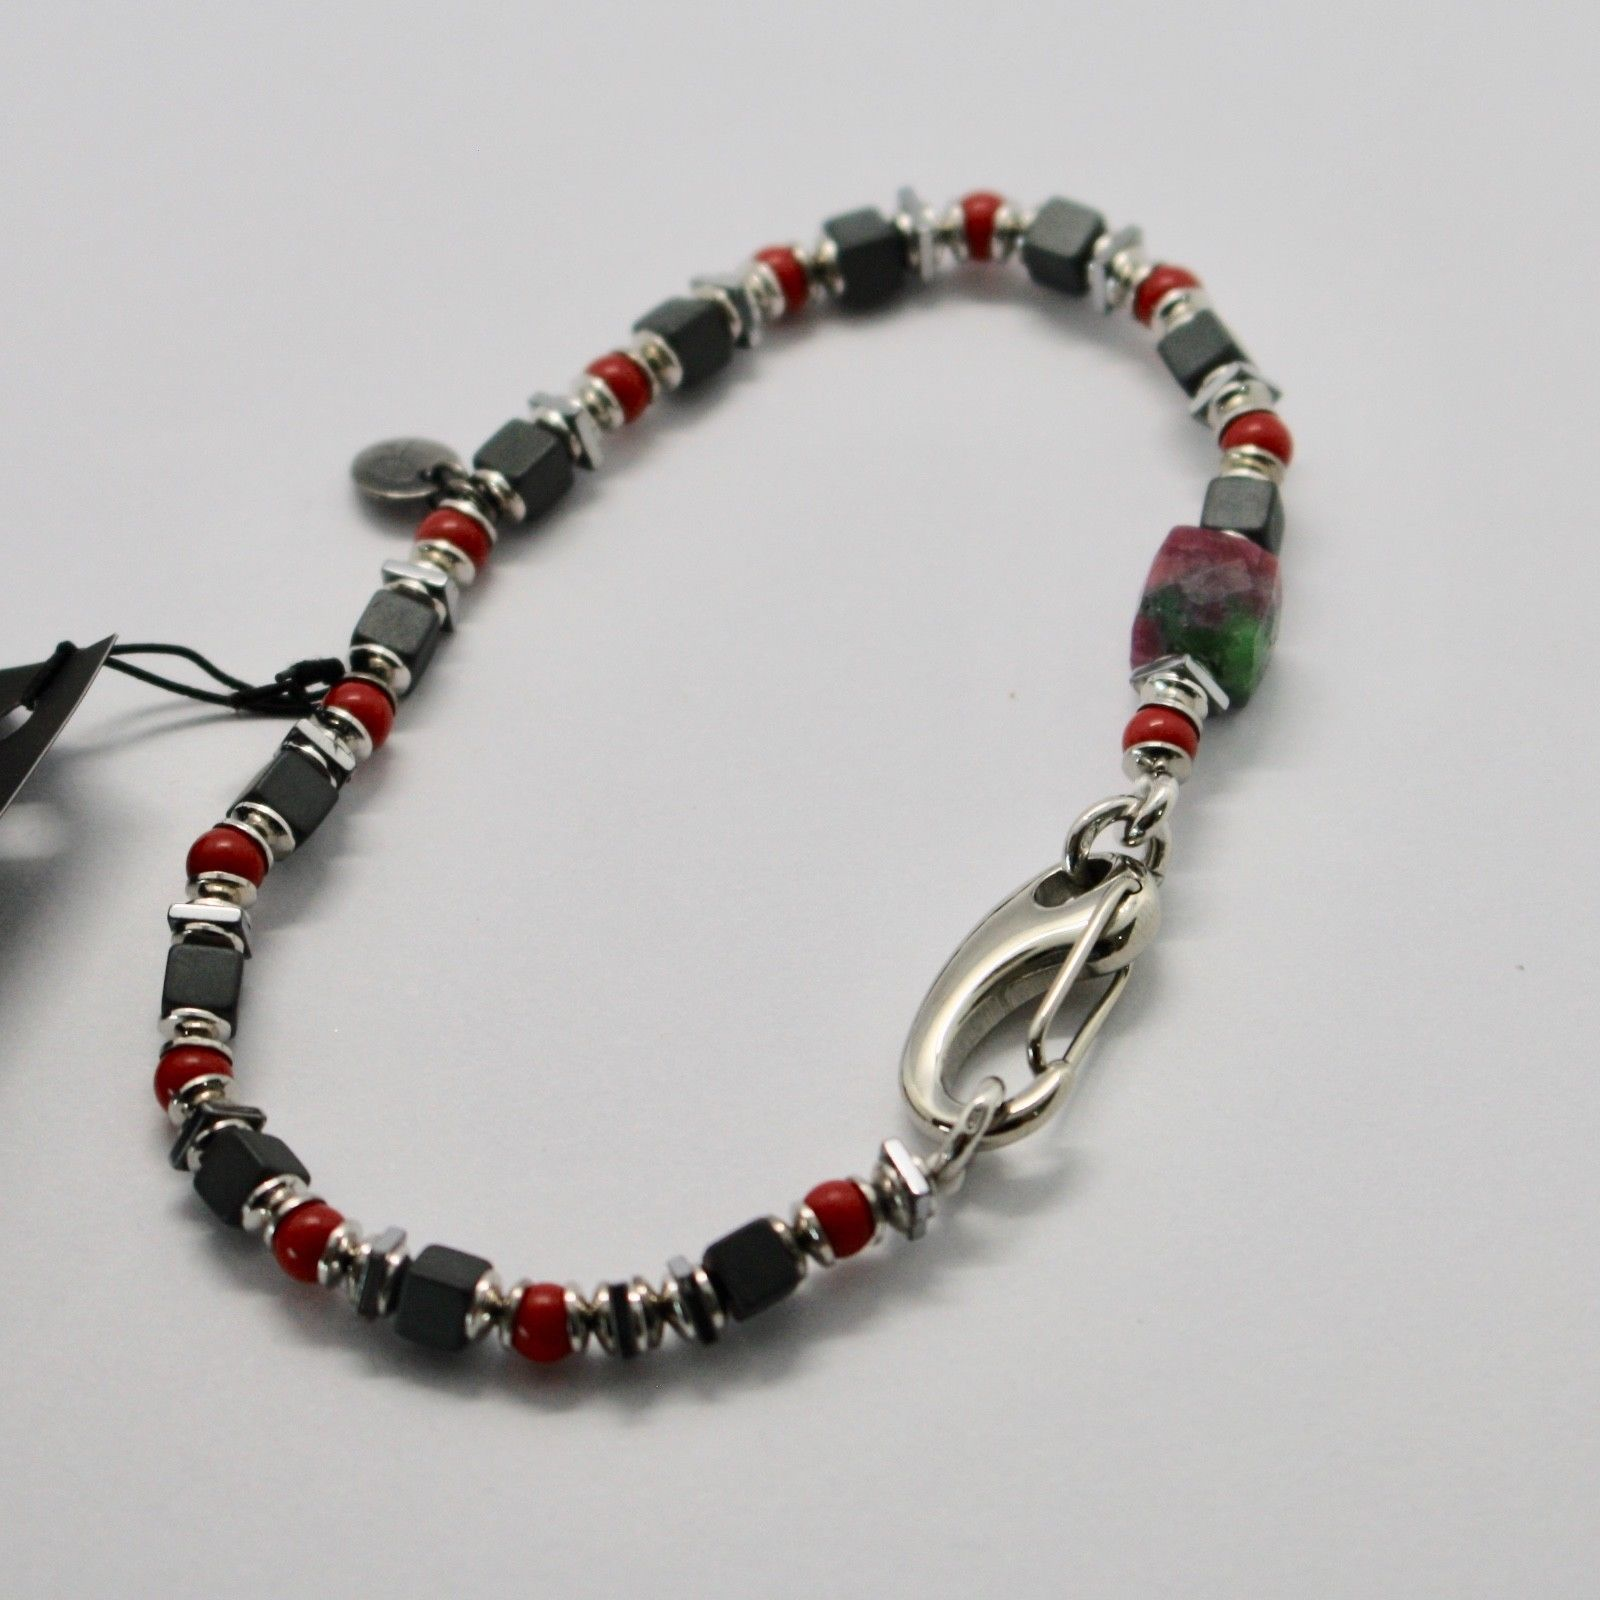 Silver 925 Bracelet Ruby Zoisite Coral Bpan-13 Made in Italy by Maschia